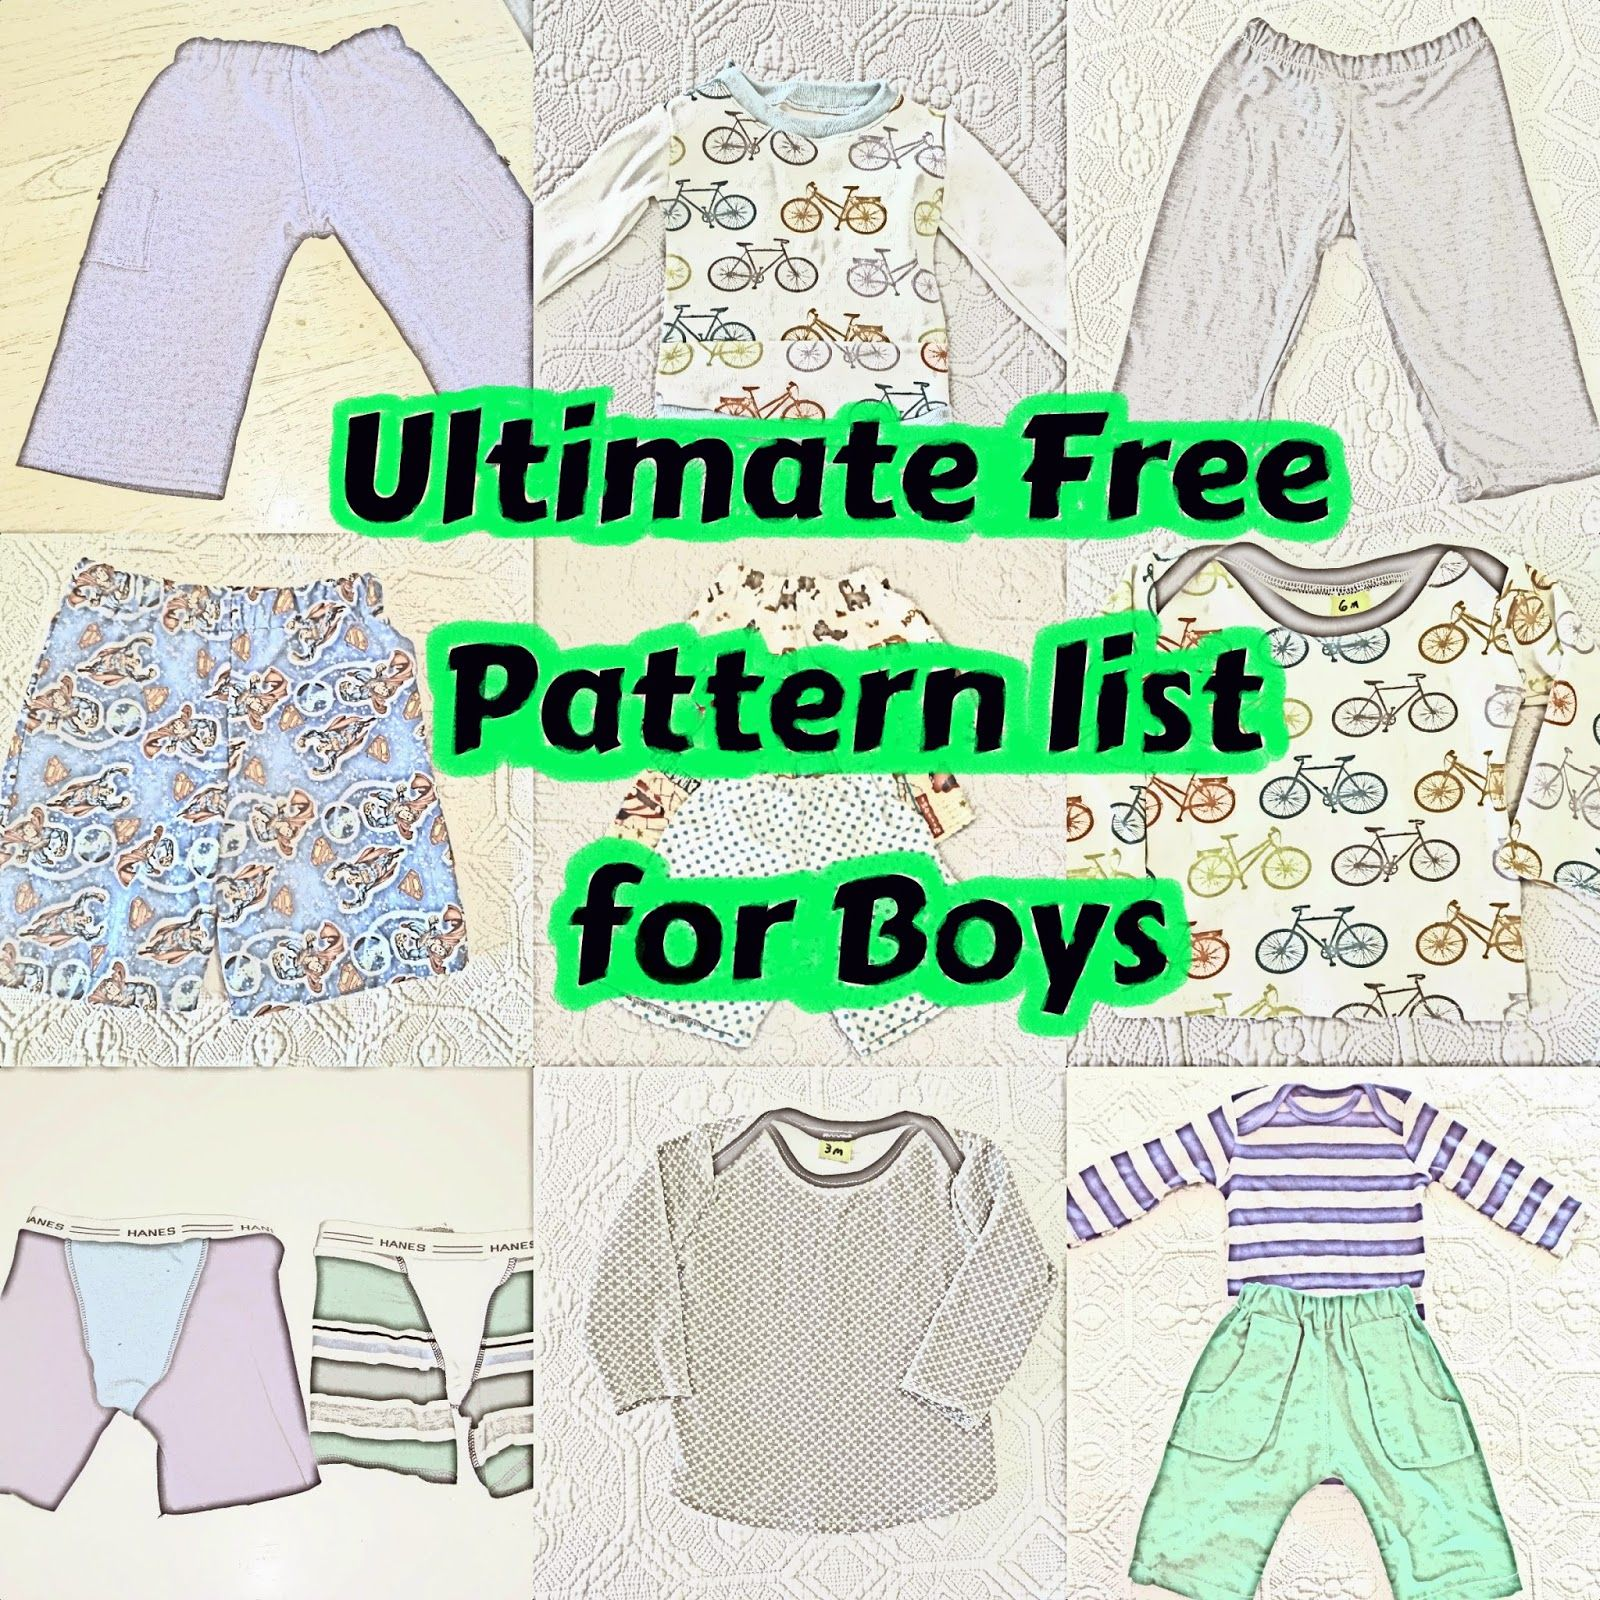 Free Boy Patterns Sew Boy Sewing Patterns Free Sewing Patterns